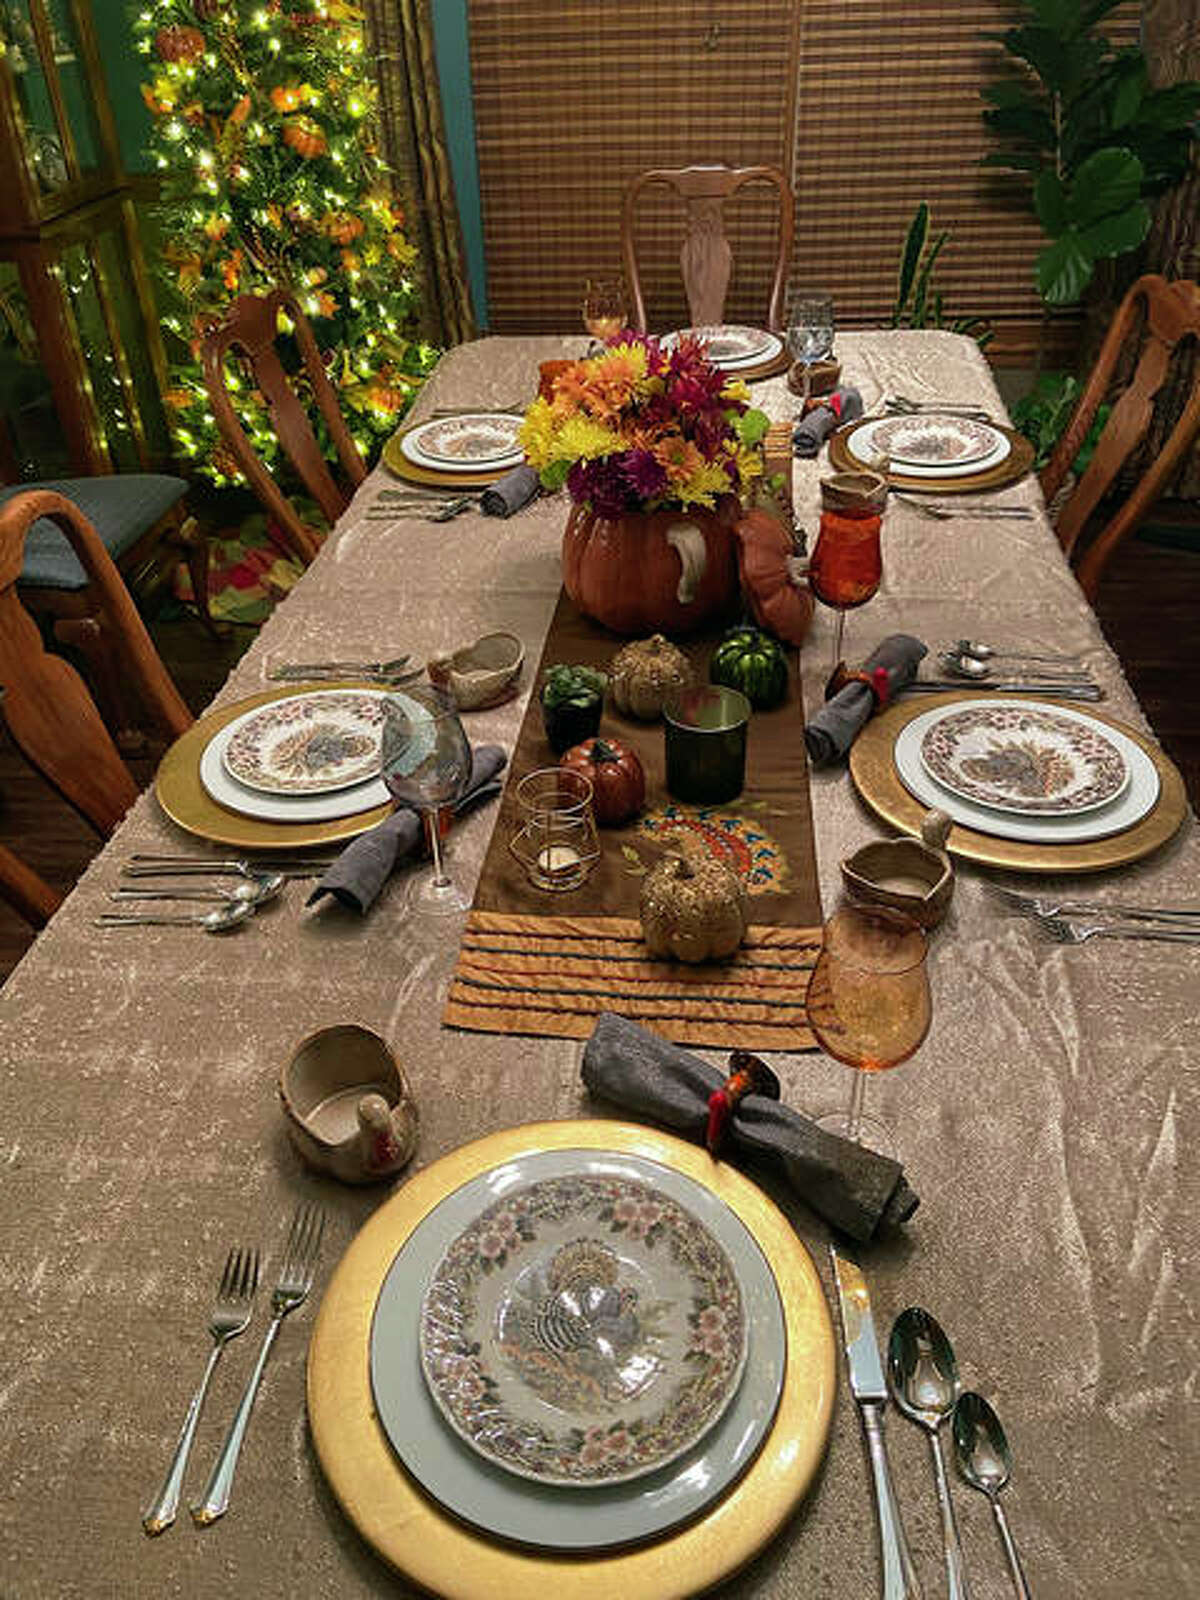 Another view of the Collins' holiday table.